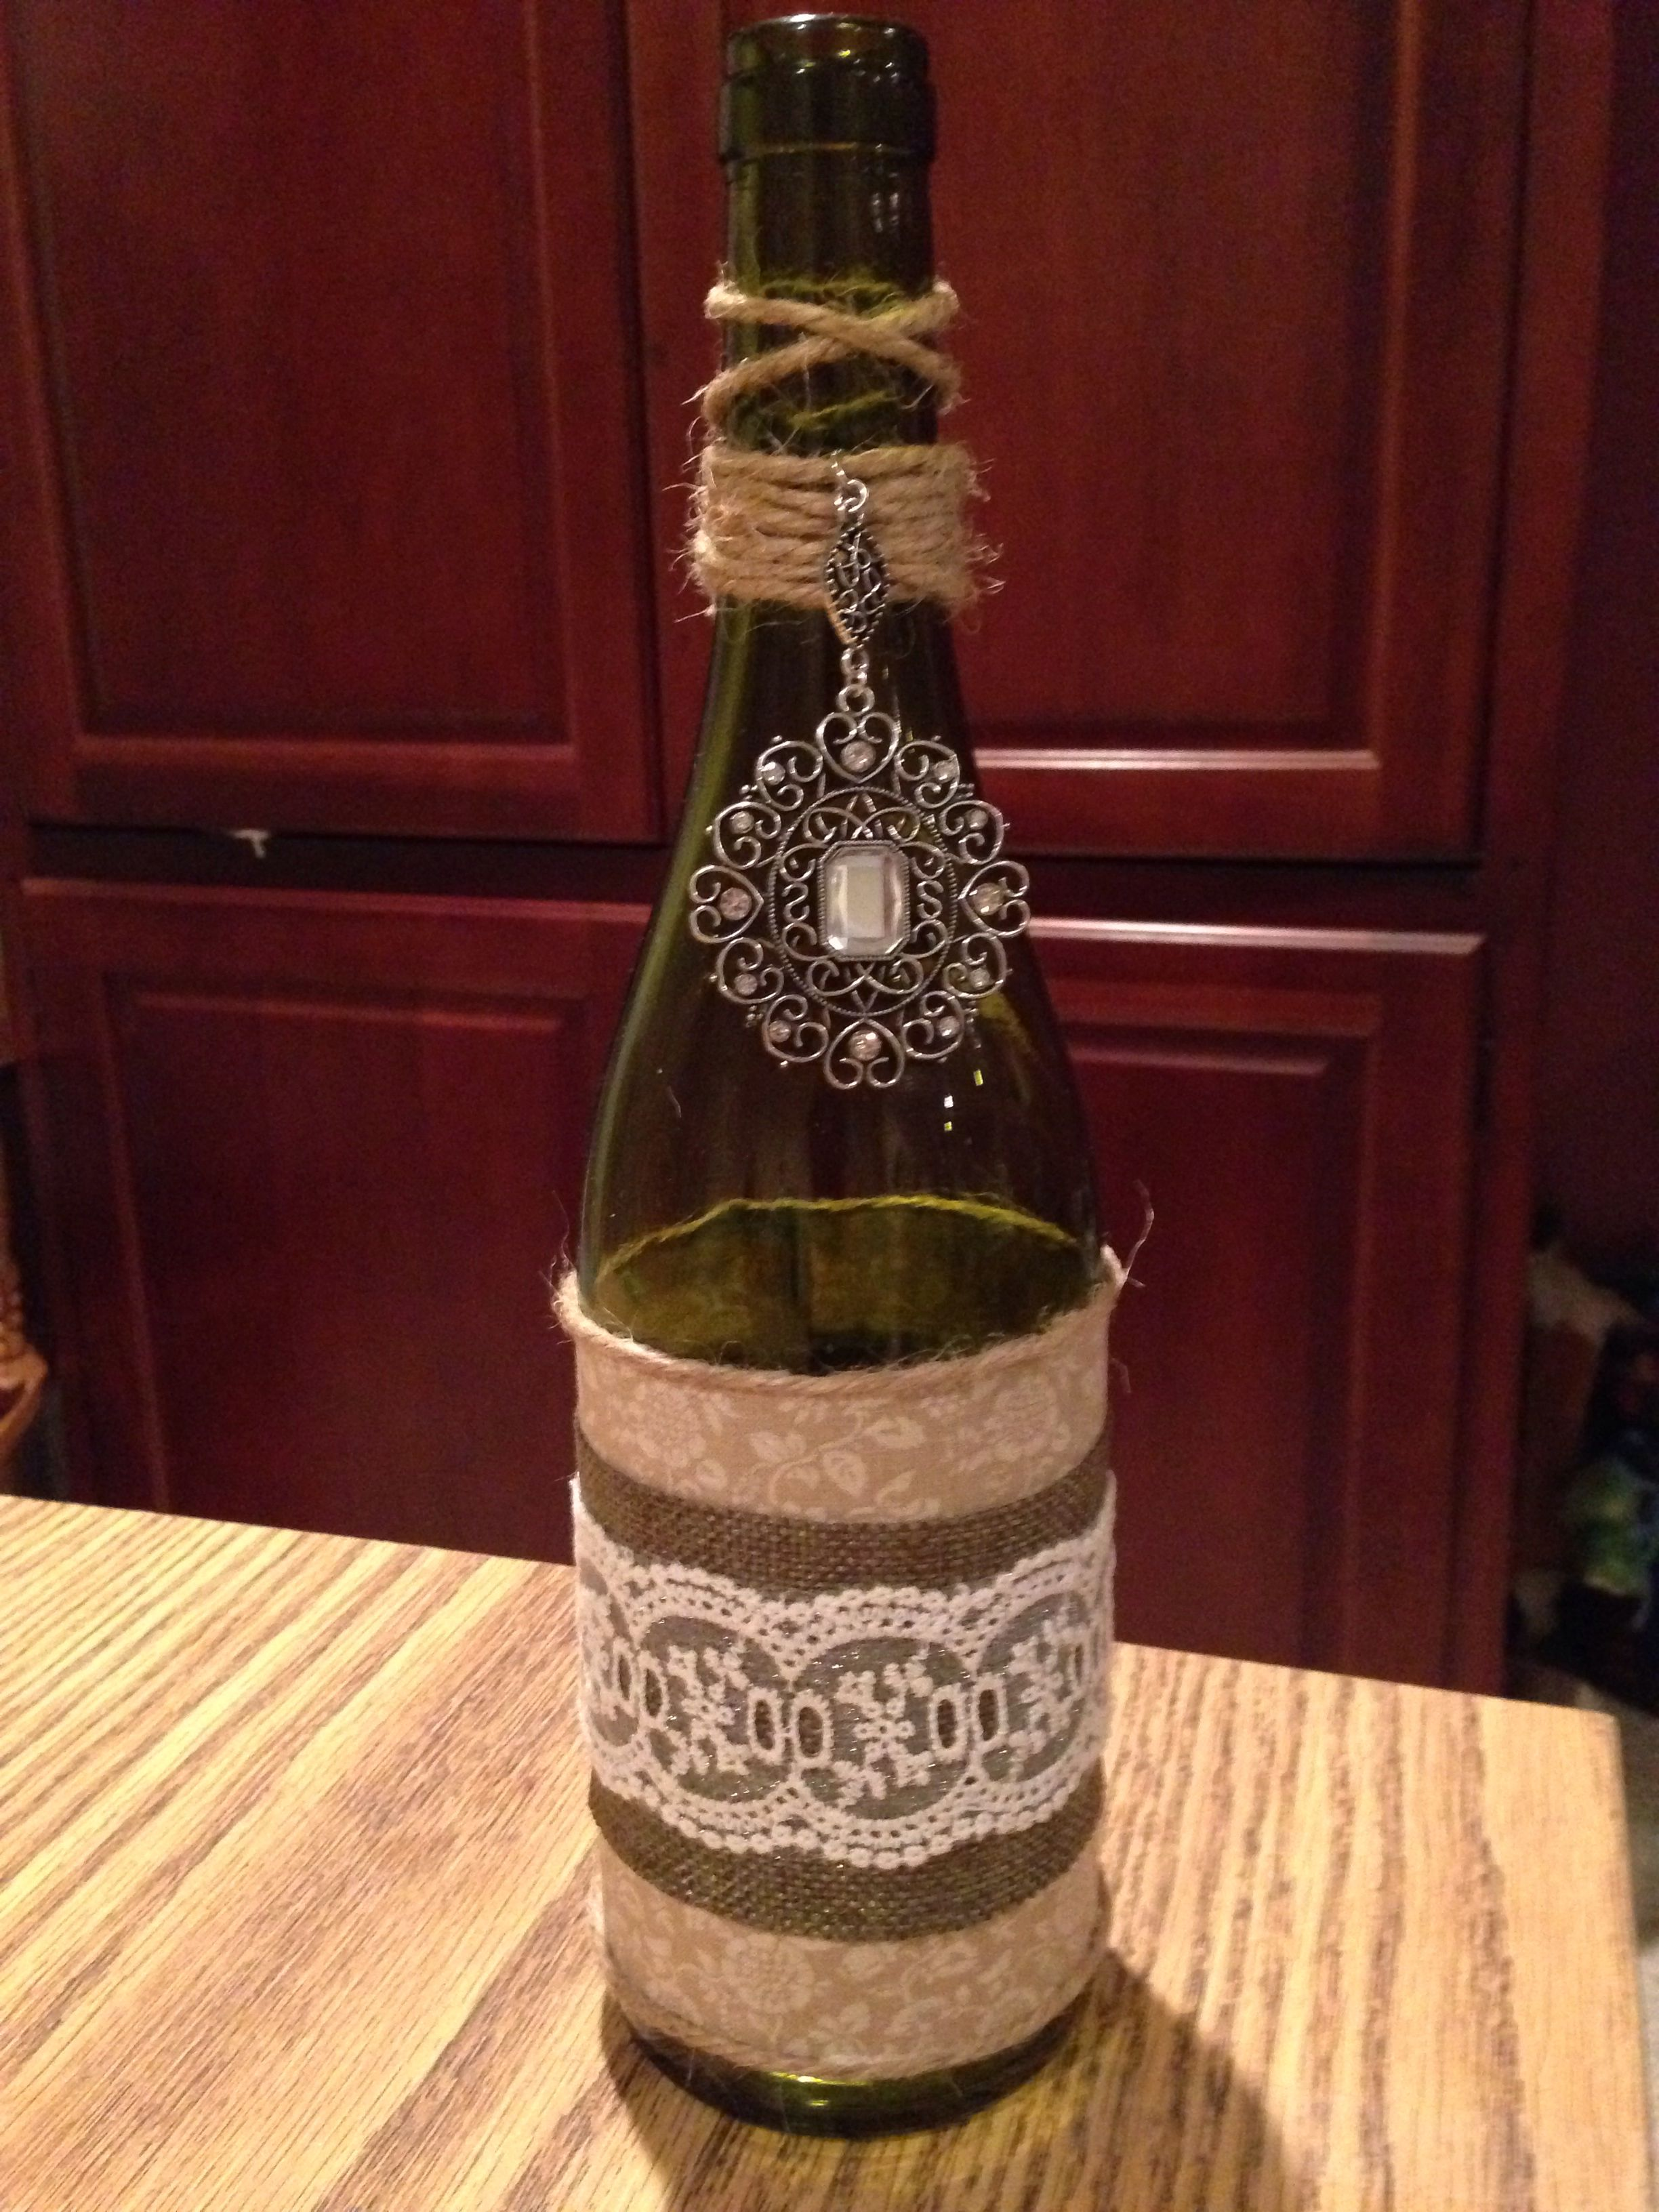 Pin By Joanne Rill On The Crafts I Have Made Bottle Crafts Wine Bottle Crafts Wine Bottle Diy